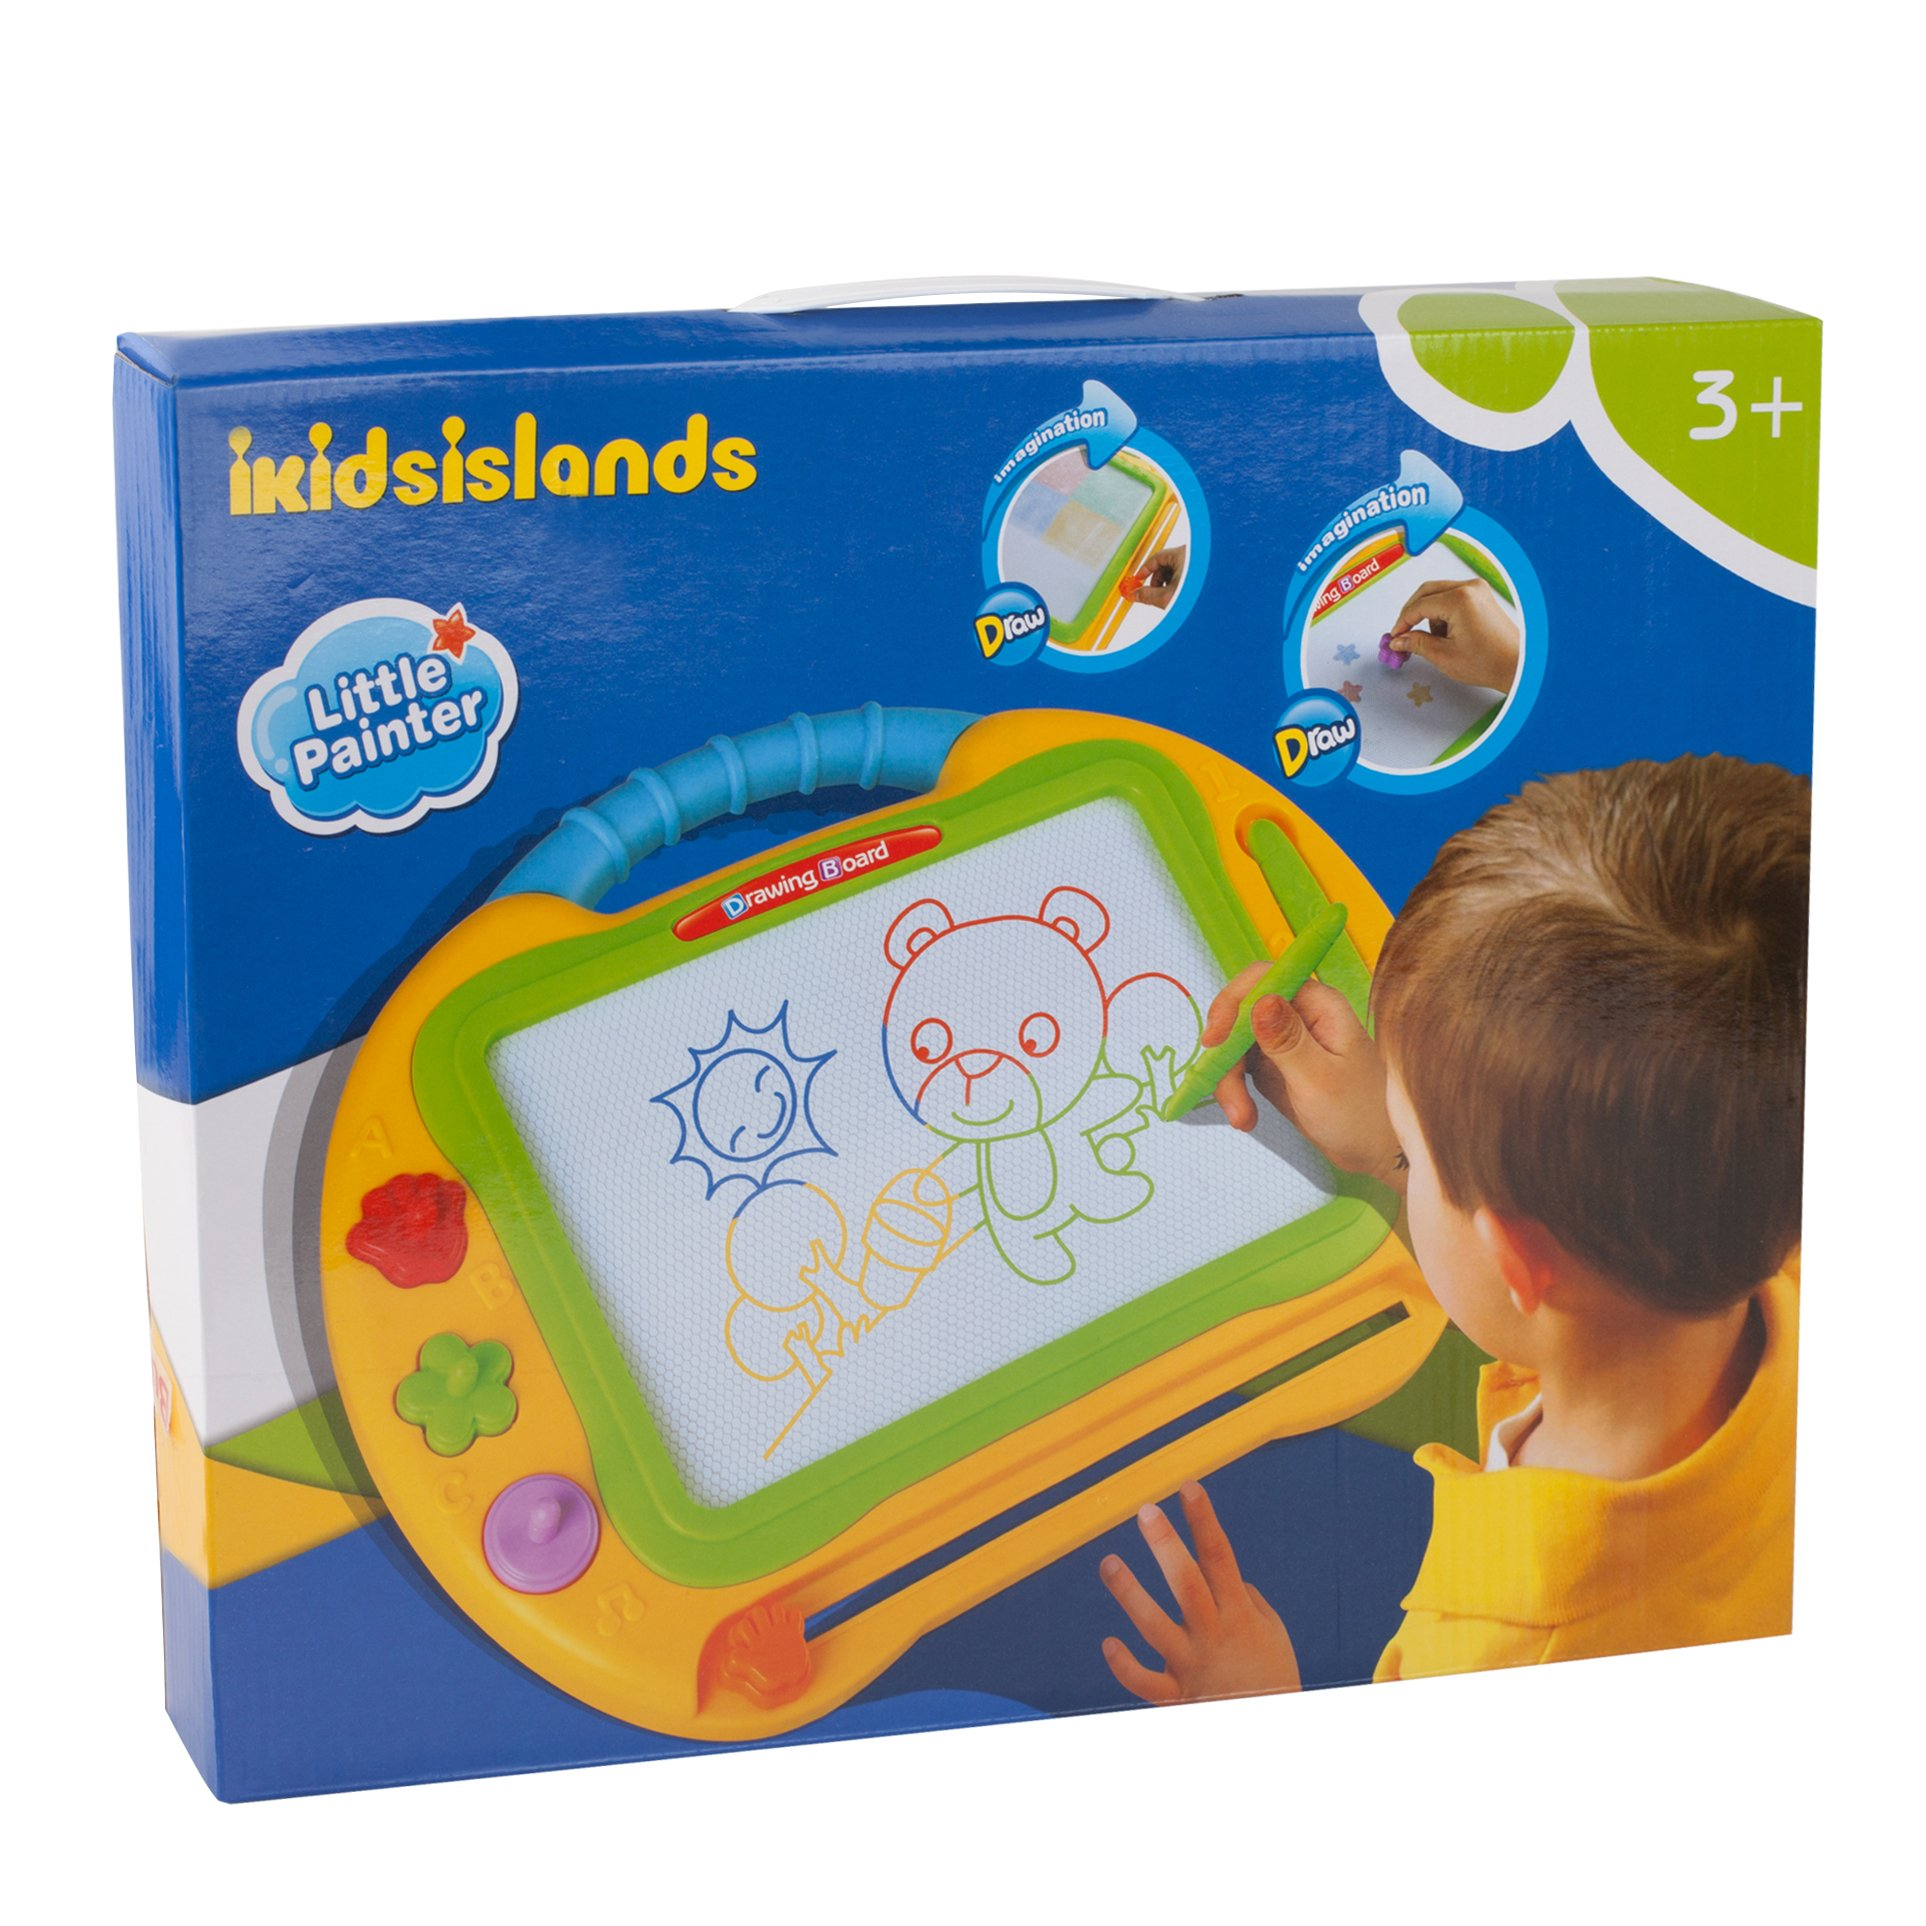 ikidsislands IKS99Y [Travel Size] Color Magnetic Drawing Board for Kids & Toddlers - Non Toxic Large Magna Sketch Doodle Educational Toy for Boys, with 1 Pen & 2 Stamps (Yellow) by ikidsislands (Image #7)